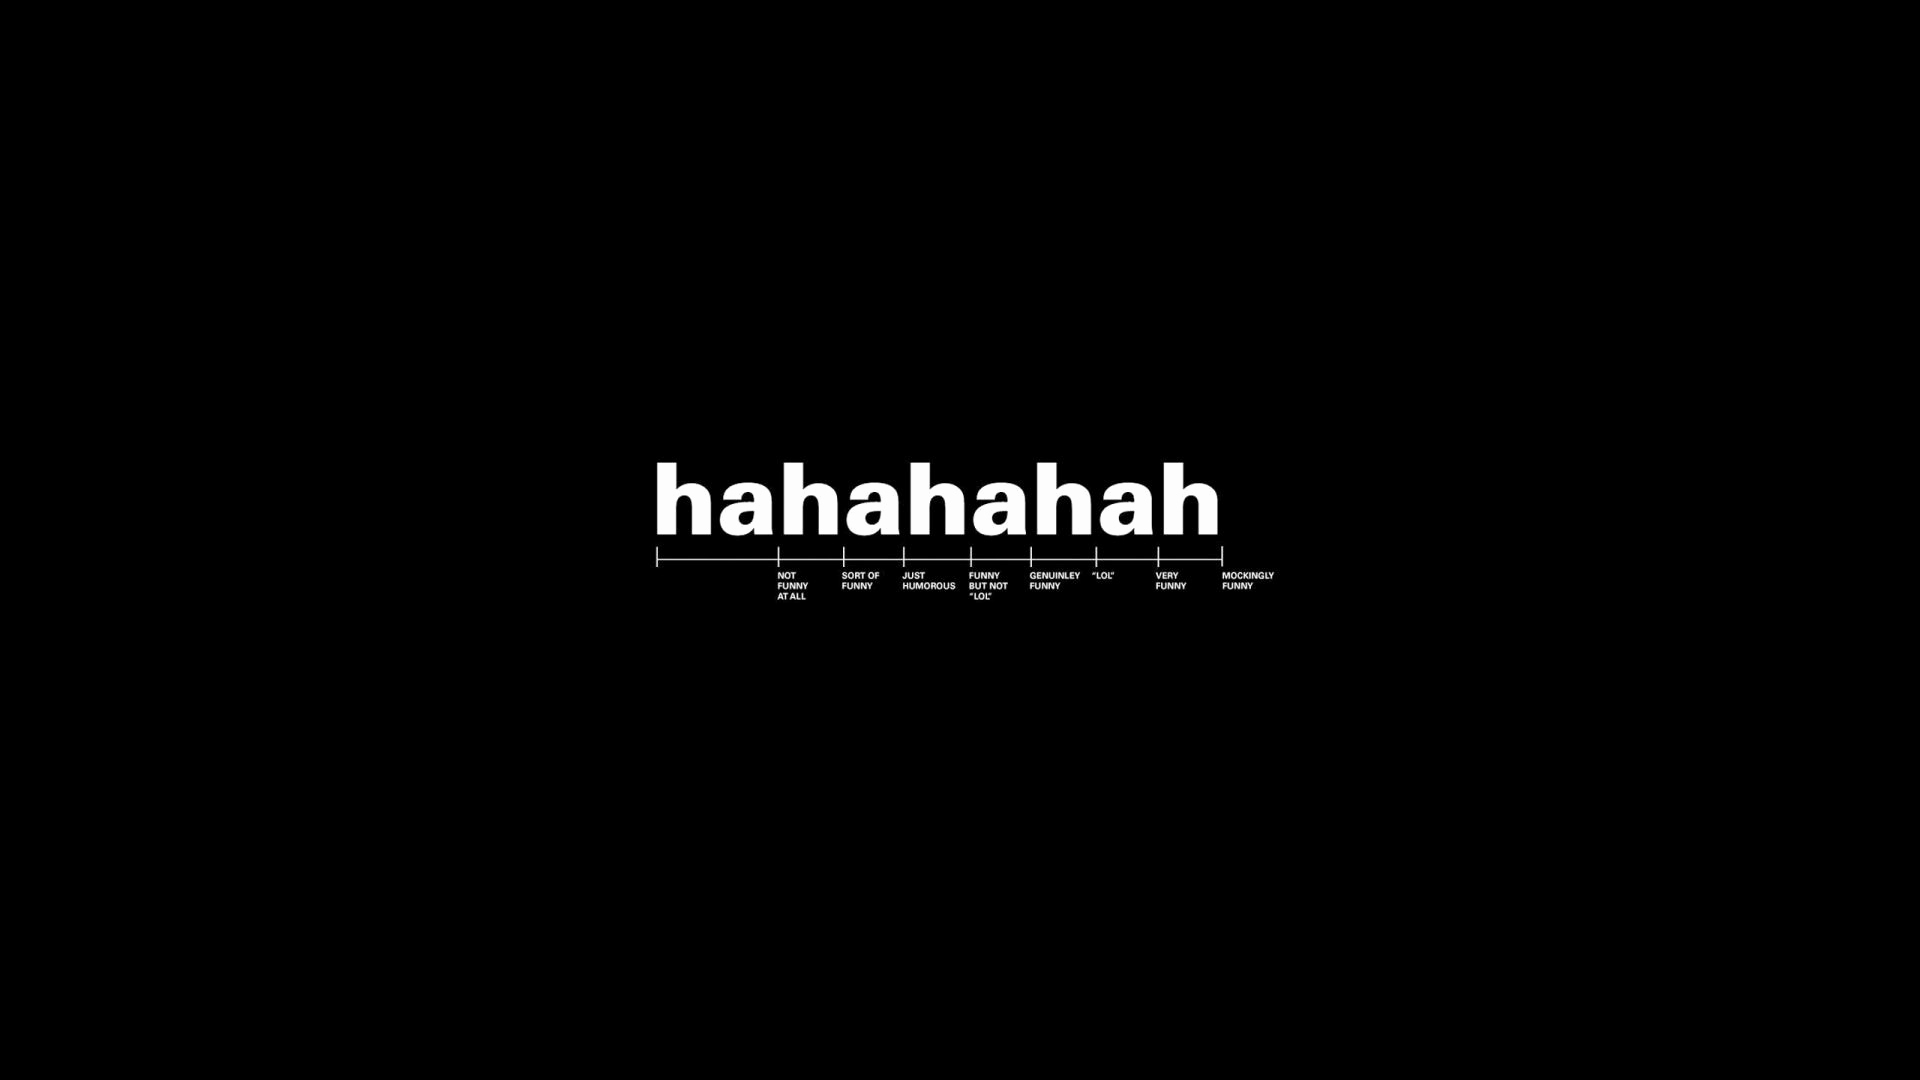 1080p wallpapers new funny hd wallpapers 1080p ·â' - hd wallpaper